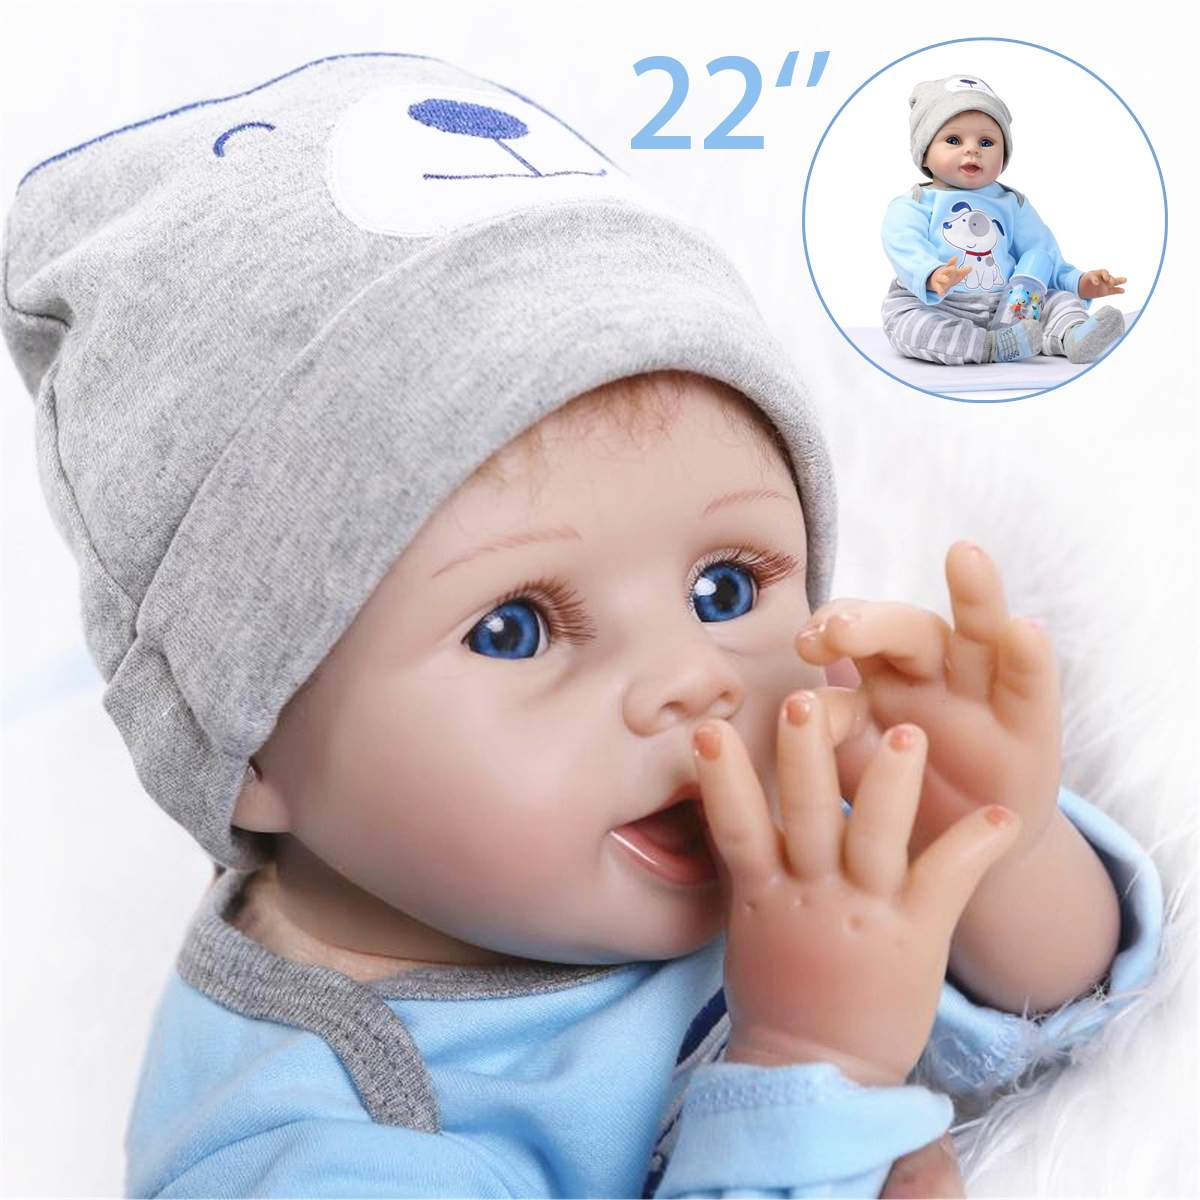 55cm Baby Reborn Dolls Silicone Reborn Baby Dolls Simulation Baby Soft Doll Toys Rubber Reborn Toddlers Toys For Children